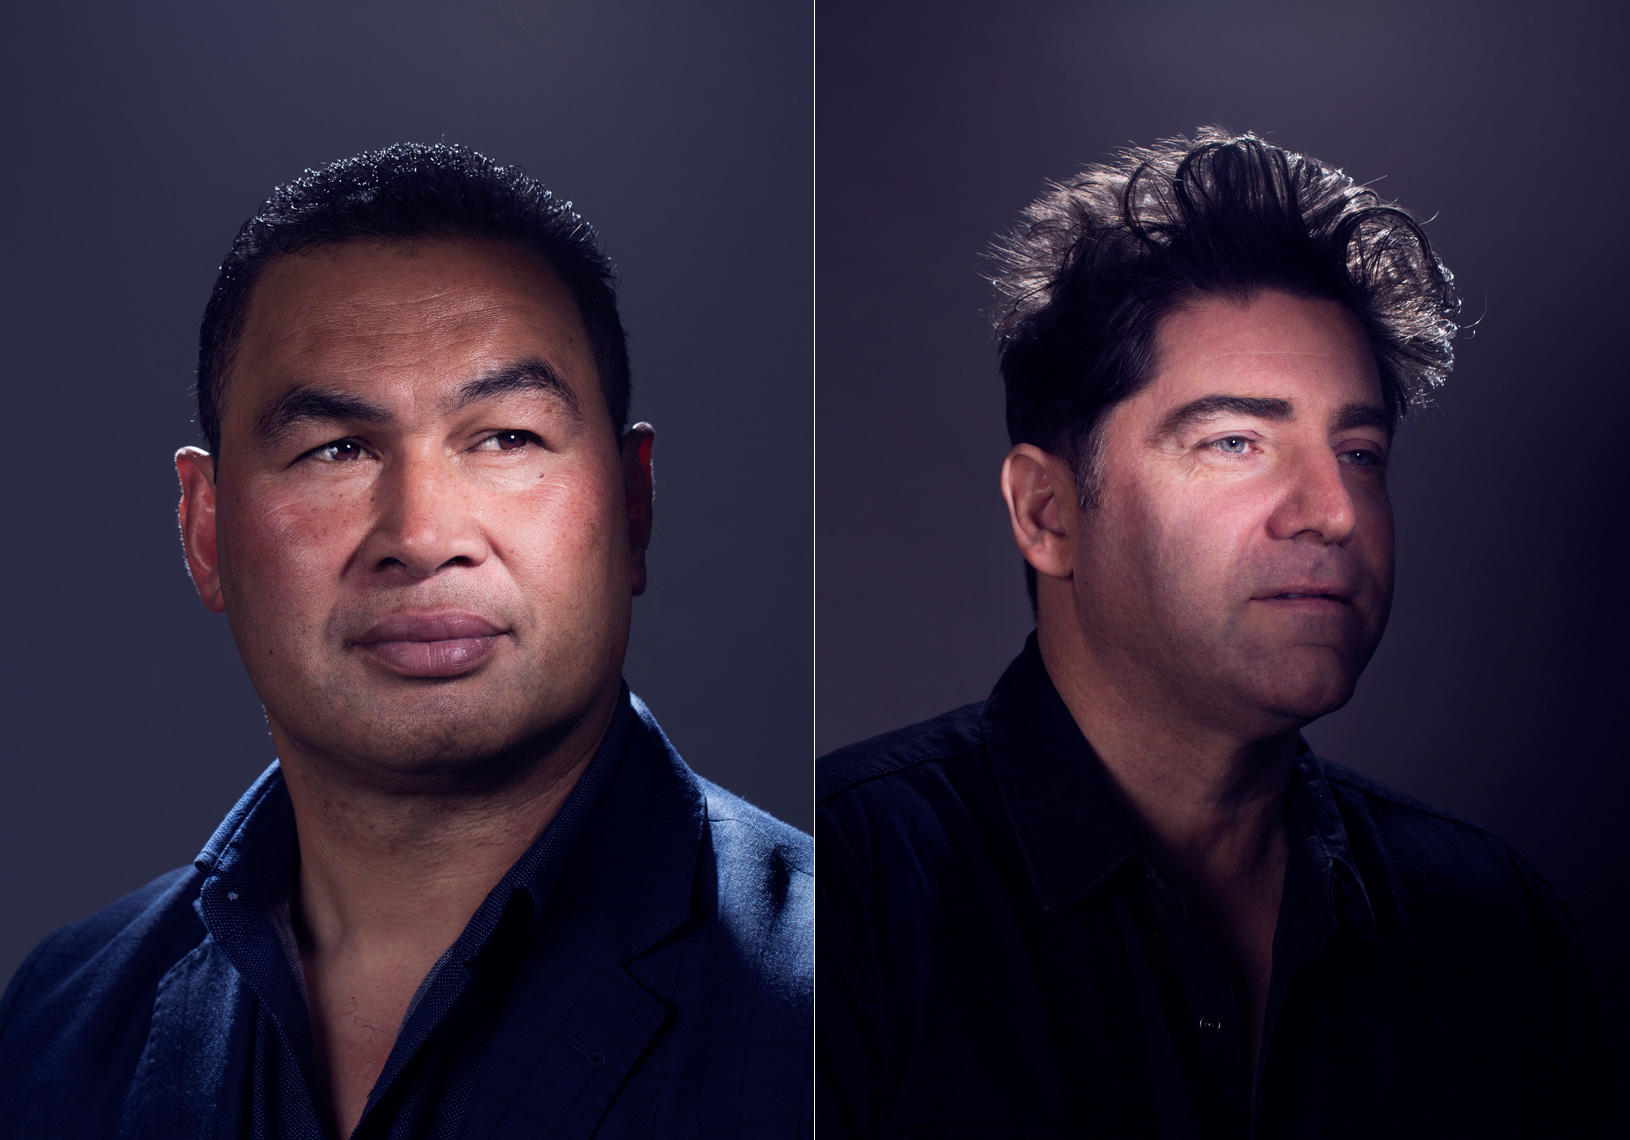 editorial portraits of two men against dark backdrop